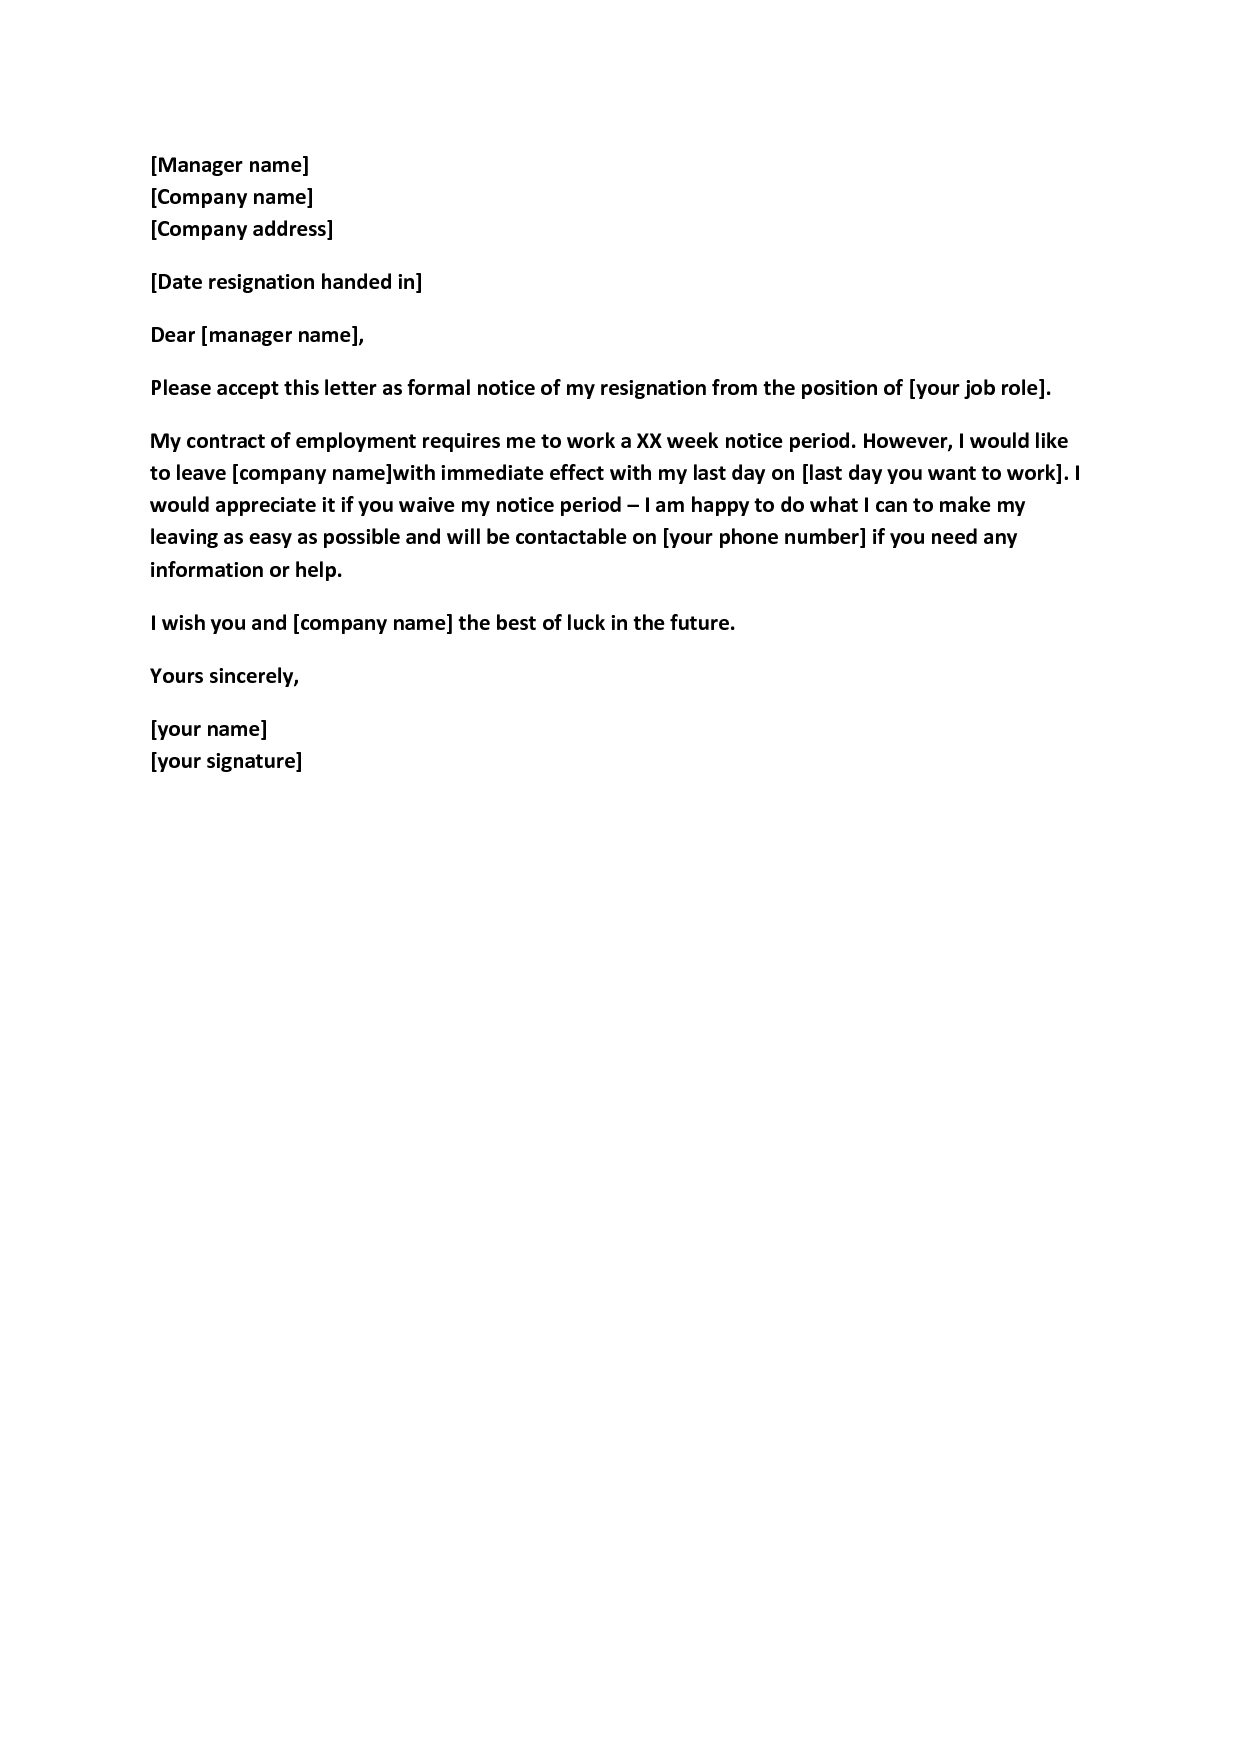 Notice letter template best templateformal letter template business resignation letter without notice resignation letter format sample resignation letter no notice spiritdancerdesigns